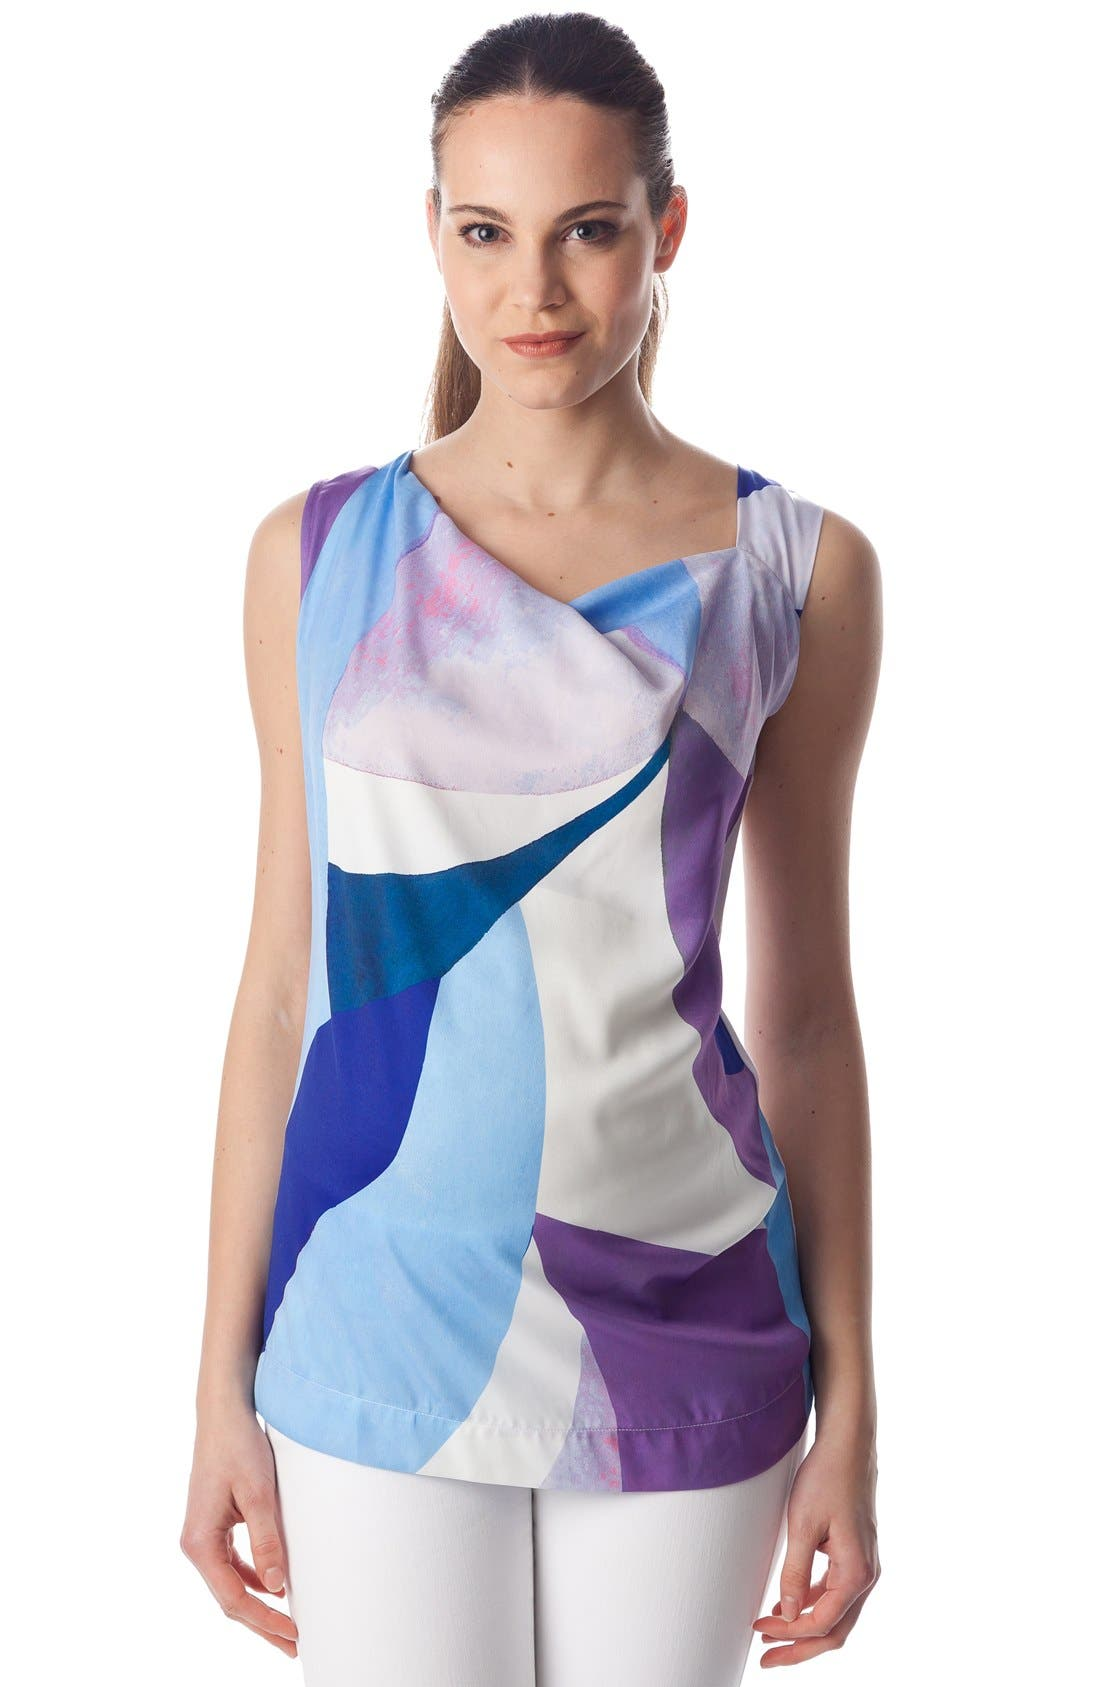 'Fialka' Graphic Maternity Top,                             Alternate thumbnail 4, color,                             Sky Surf/ White Jersey